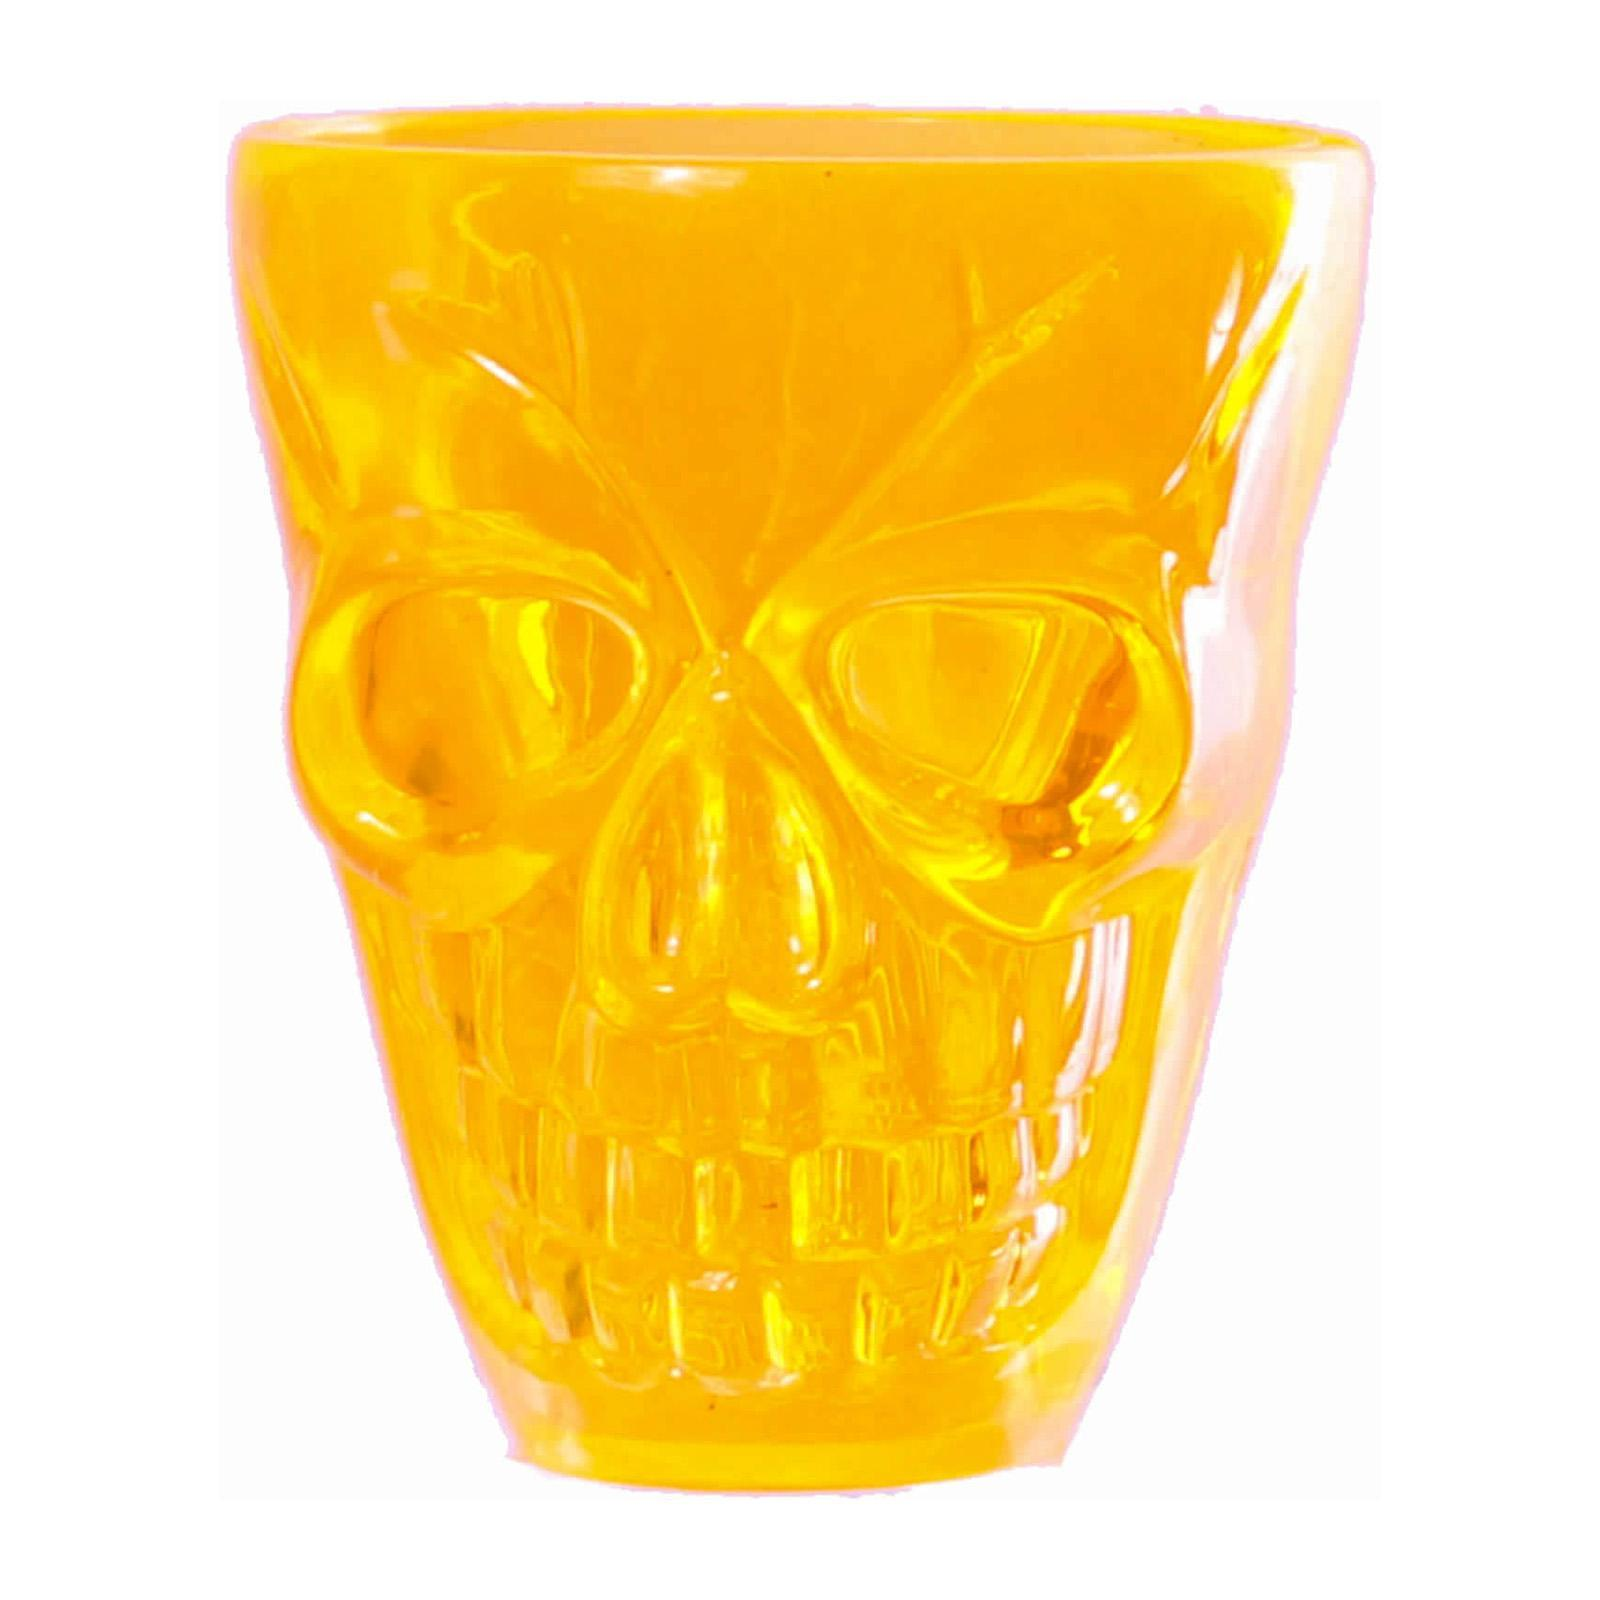 Partyforte Halloween Moulded Whiskey Shot Glasses - Skull